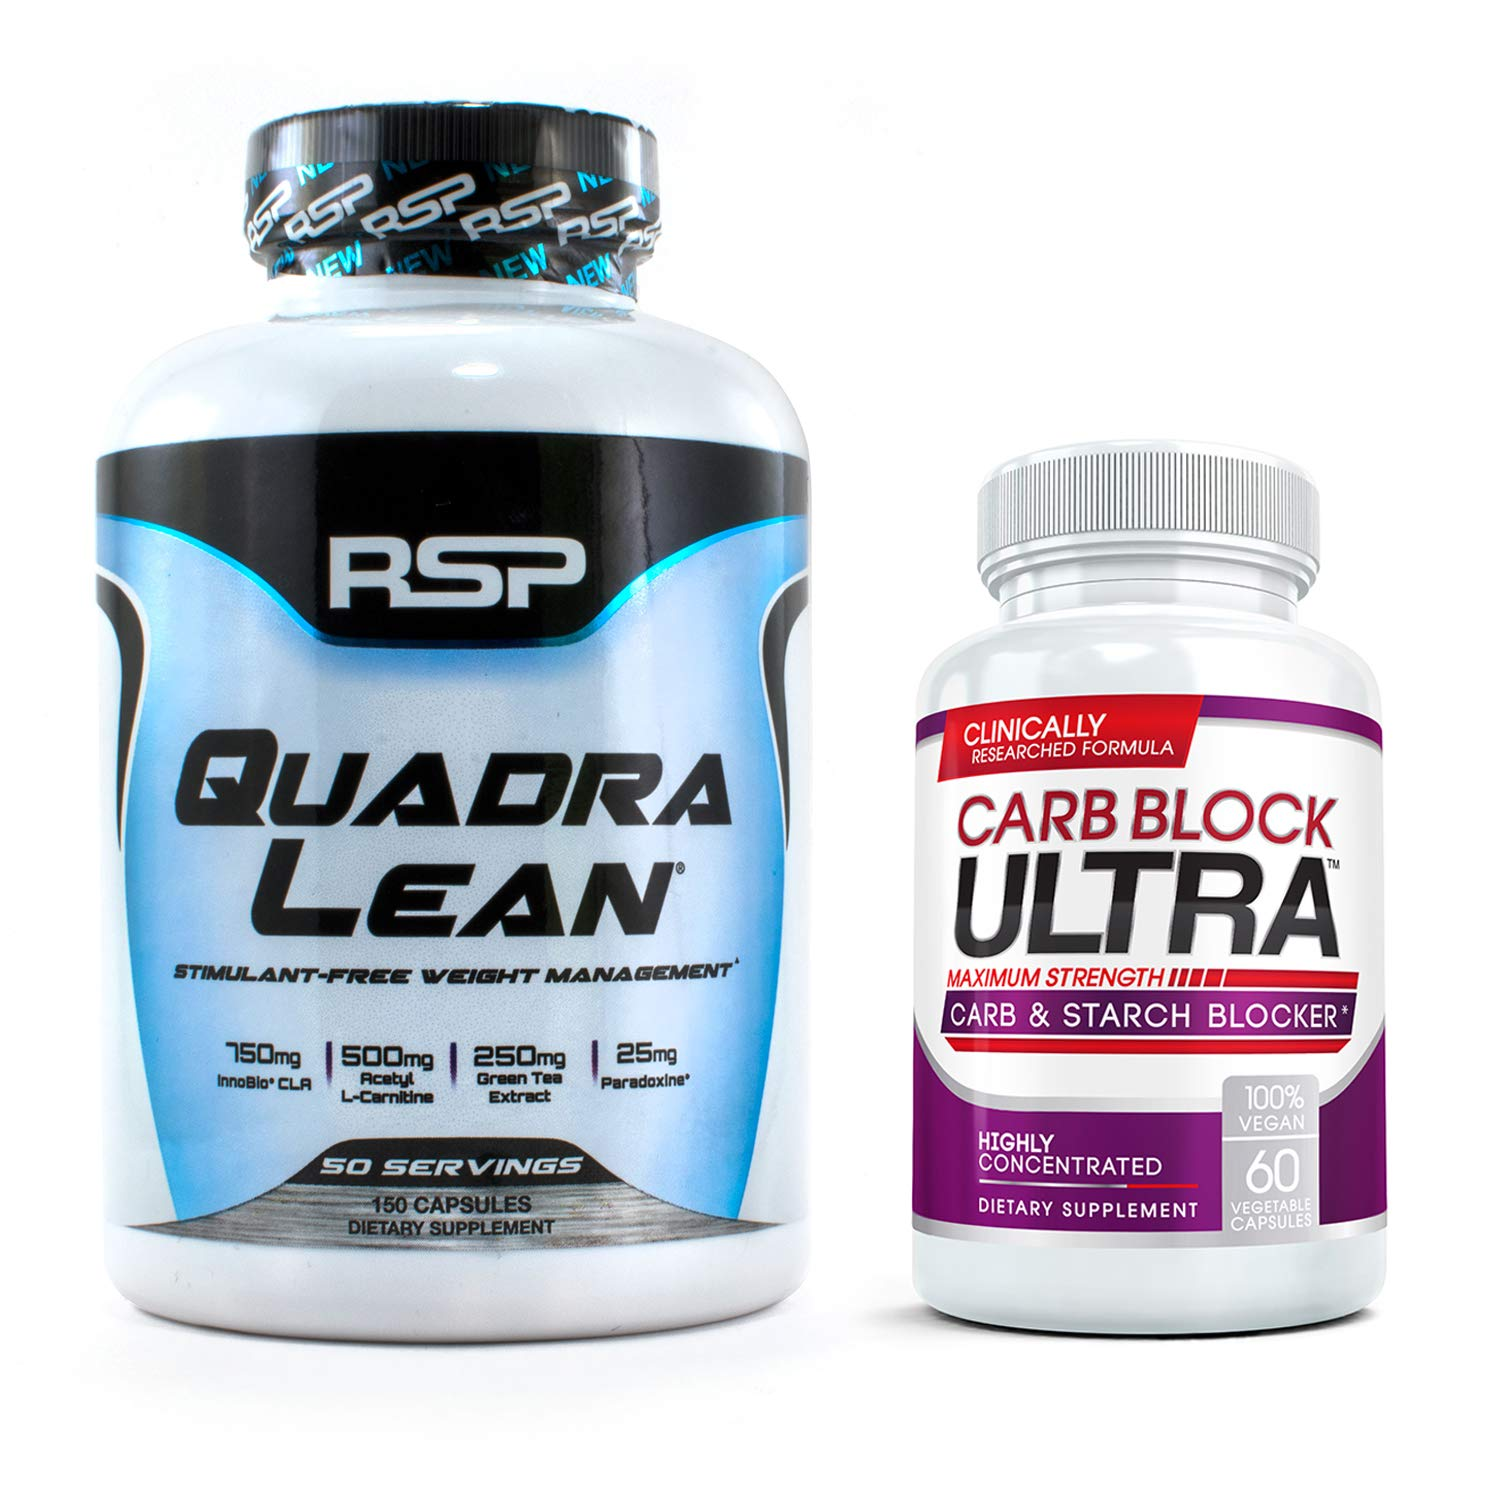 RSP QUADRALEAN 2.0 & 2X CARB Block Ultra Bundle: Professional Strength, Fat-Burning Powerhouse. Block Carbohydrates, Boost Metabolism & Energy, Inhibit Fat Production with The Best Weight Loss Pills by VHN